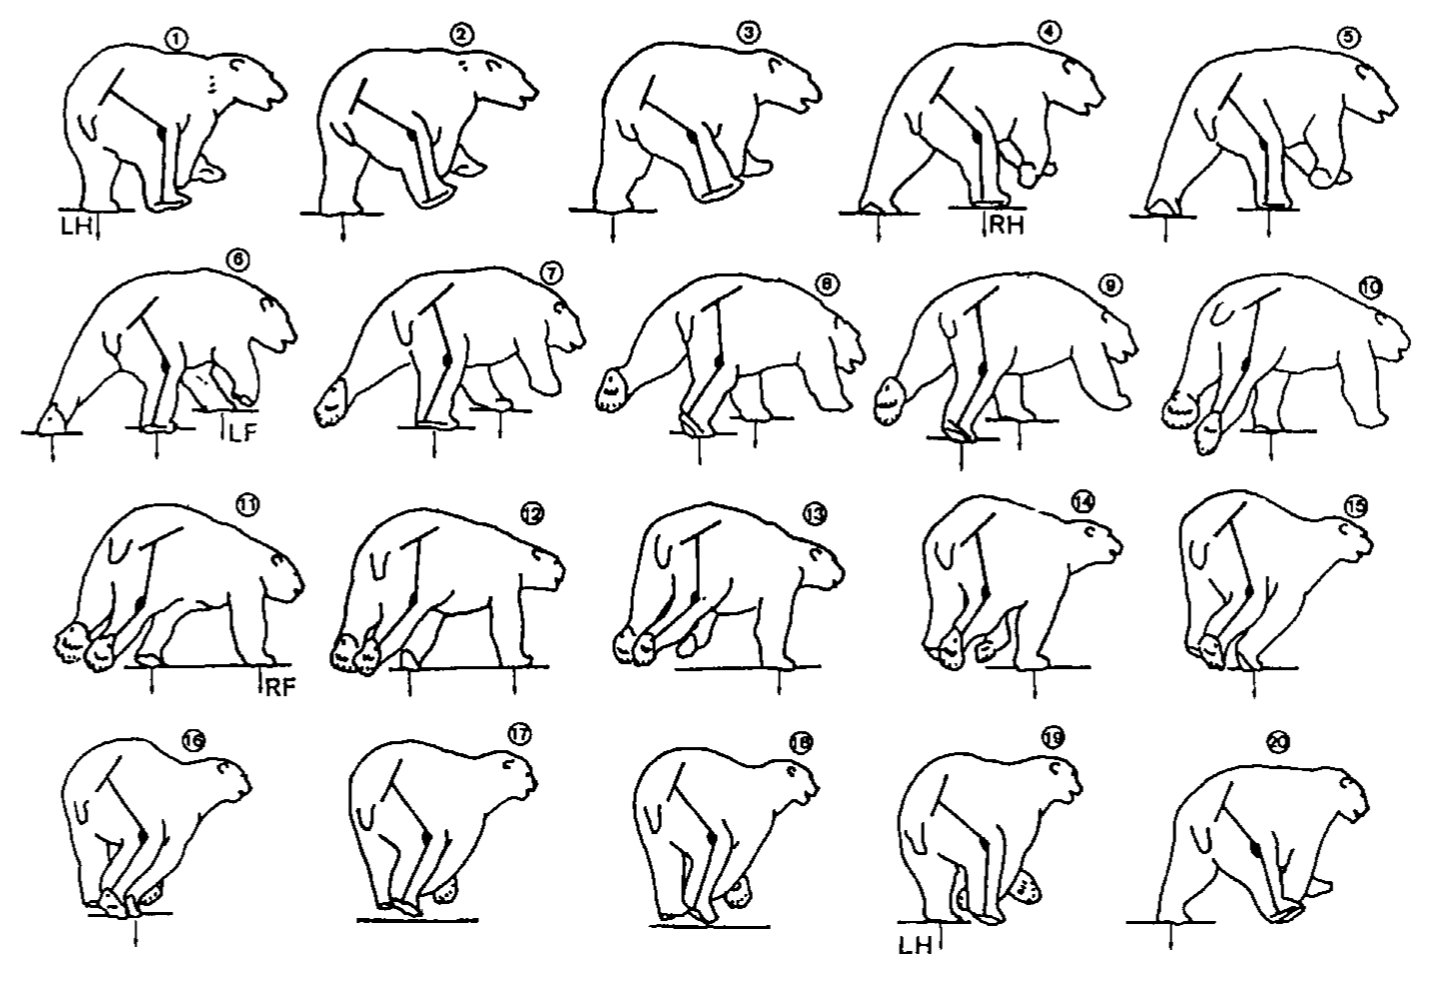 A series of drawings depicting the gait of a galloping polar bear.